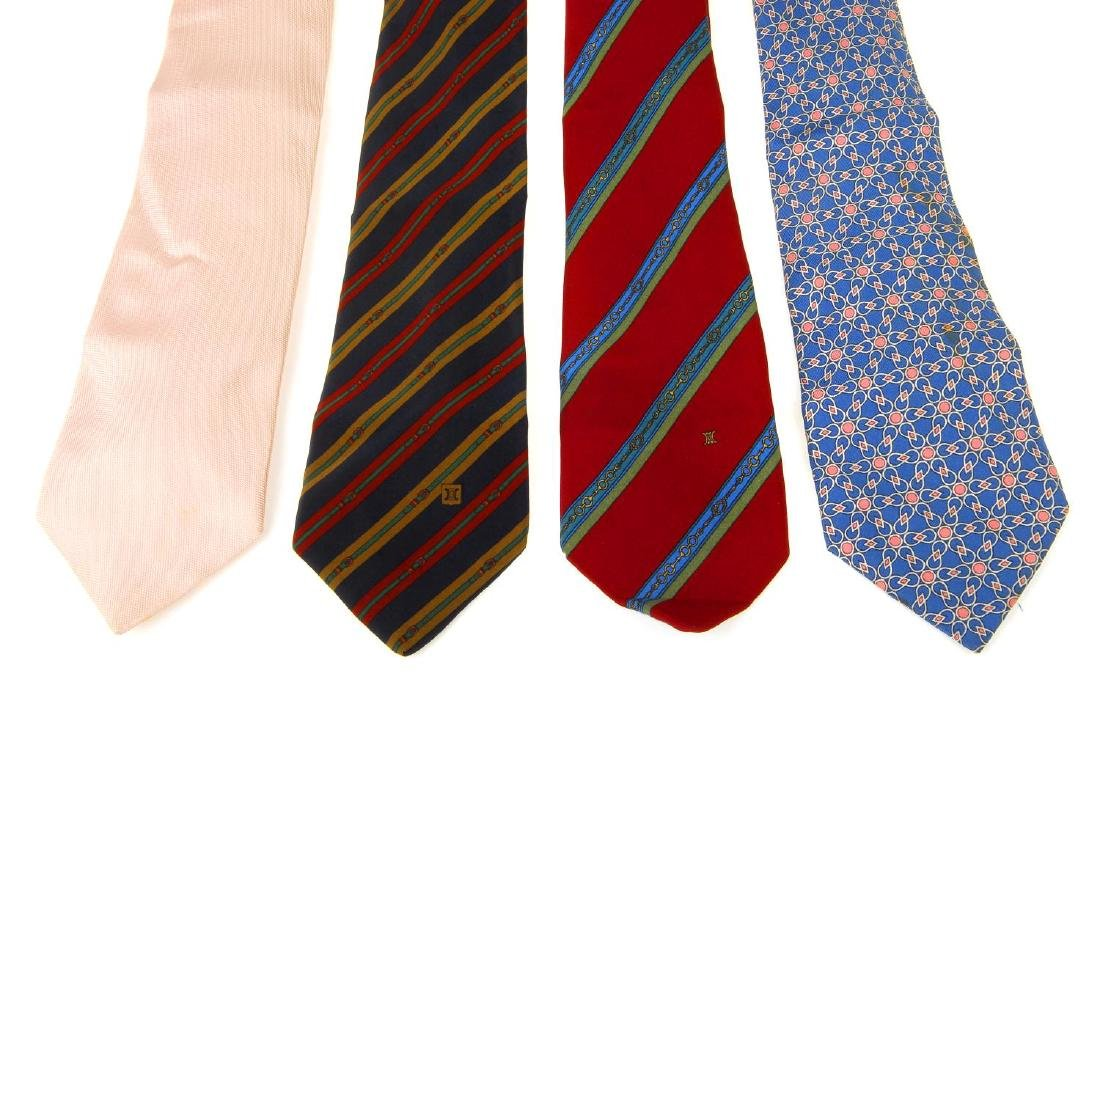 Eight ties. To include three Céline ties, two Gucci